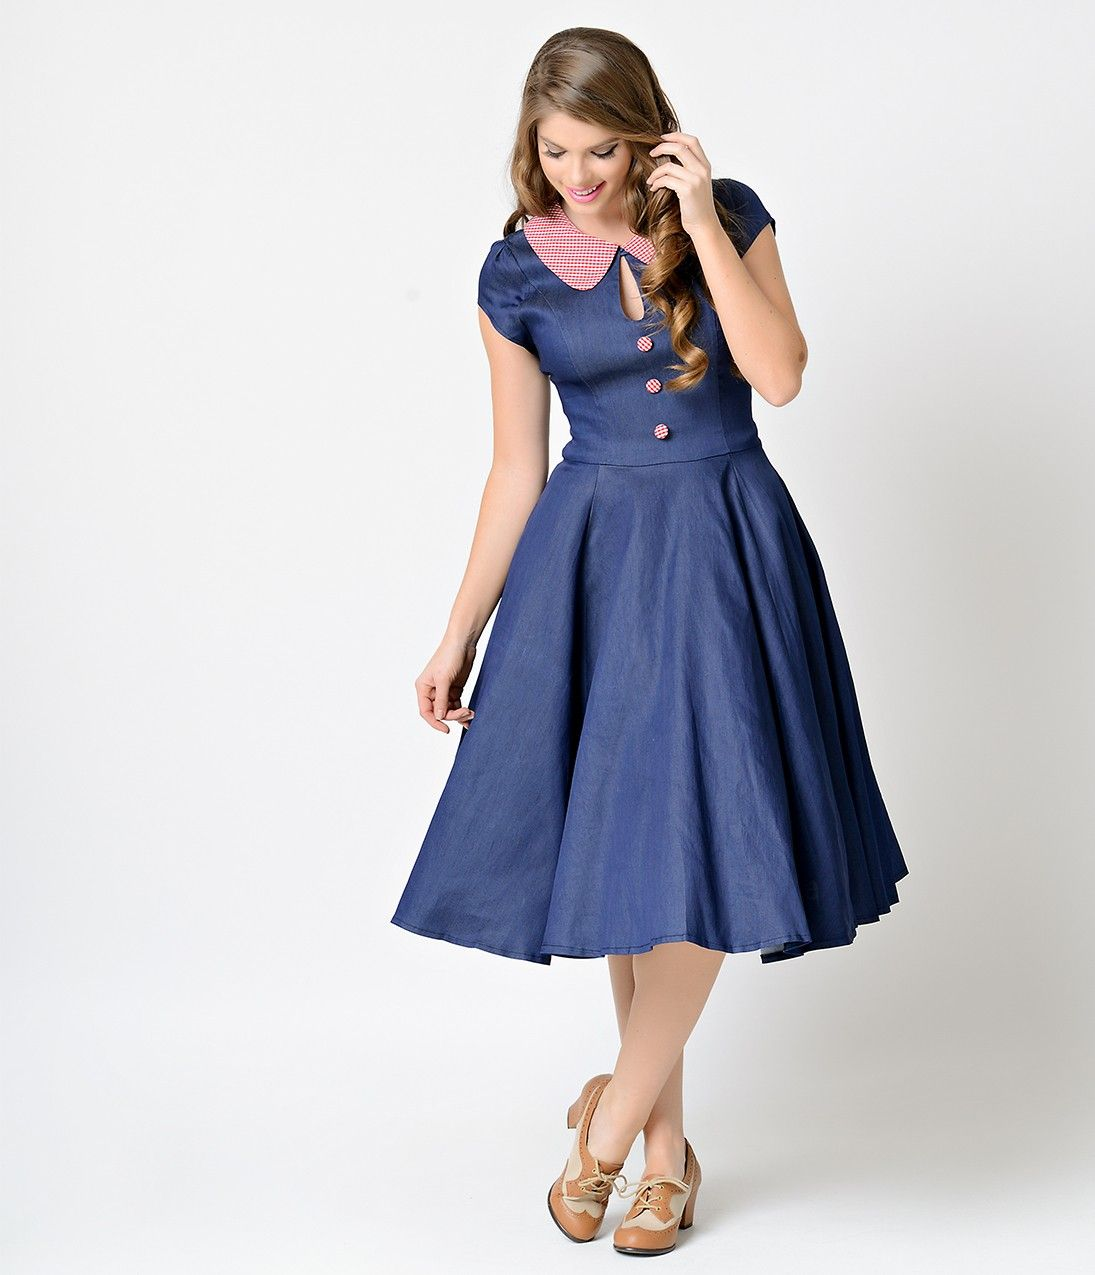 551622f444f 1950s Pin-Up Stretch Denim Blueberry Hill Cap Sleeve Swing Dress ...